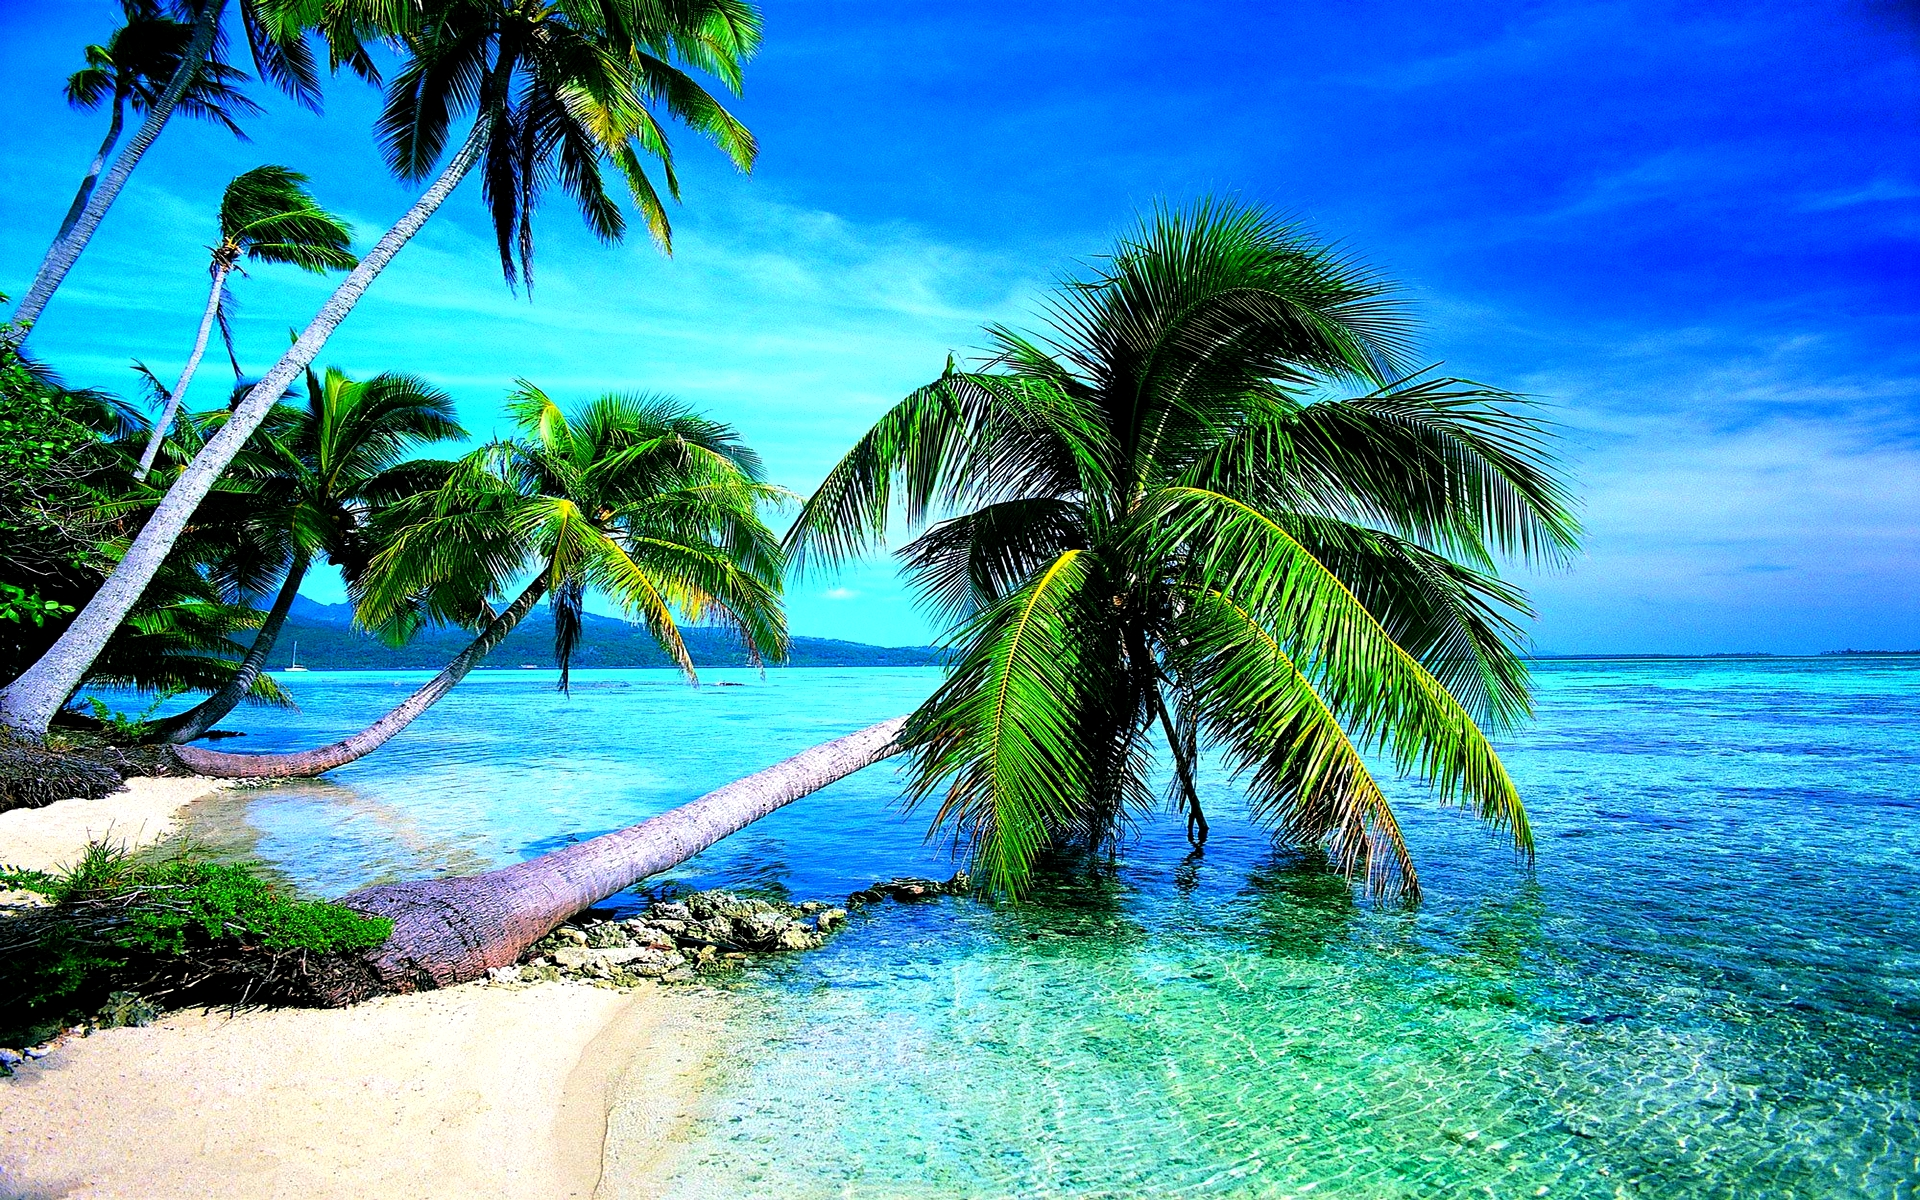 tropical beach images wallpapers | Desktop Backgrounds for ...